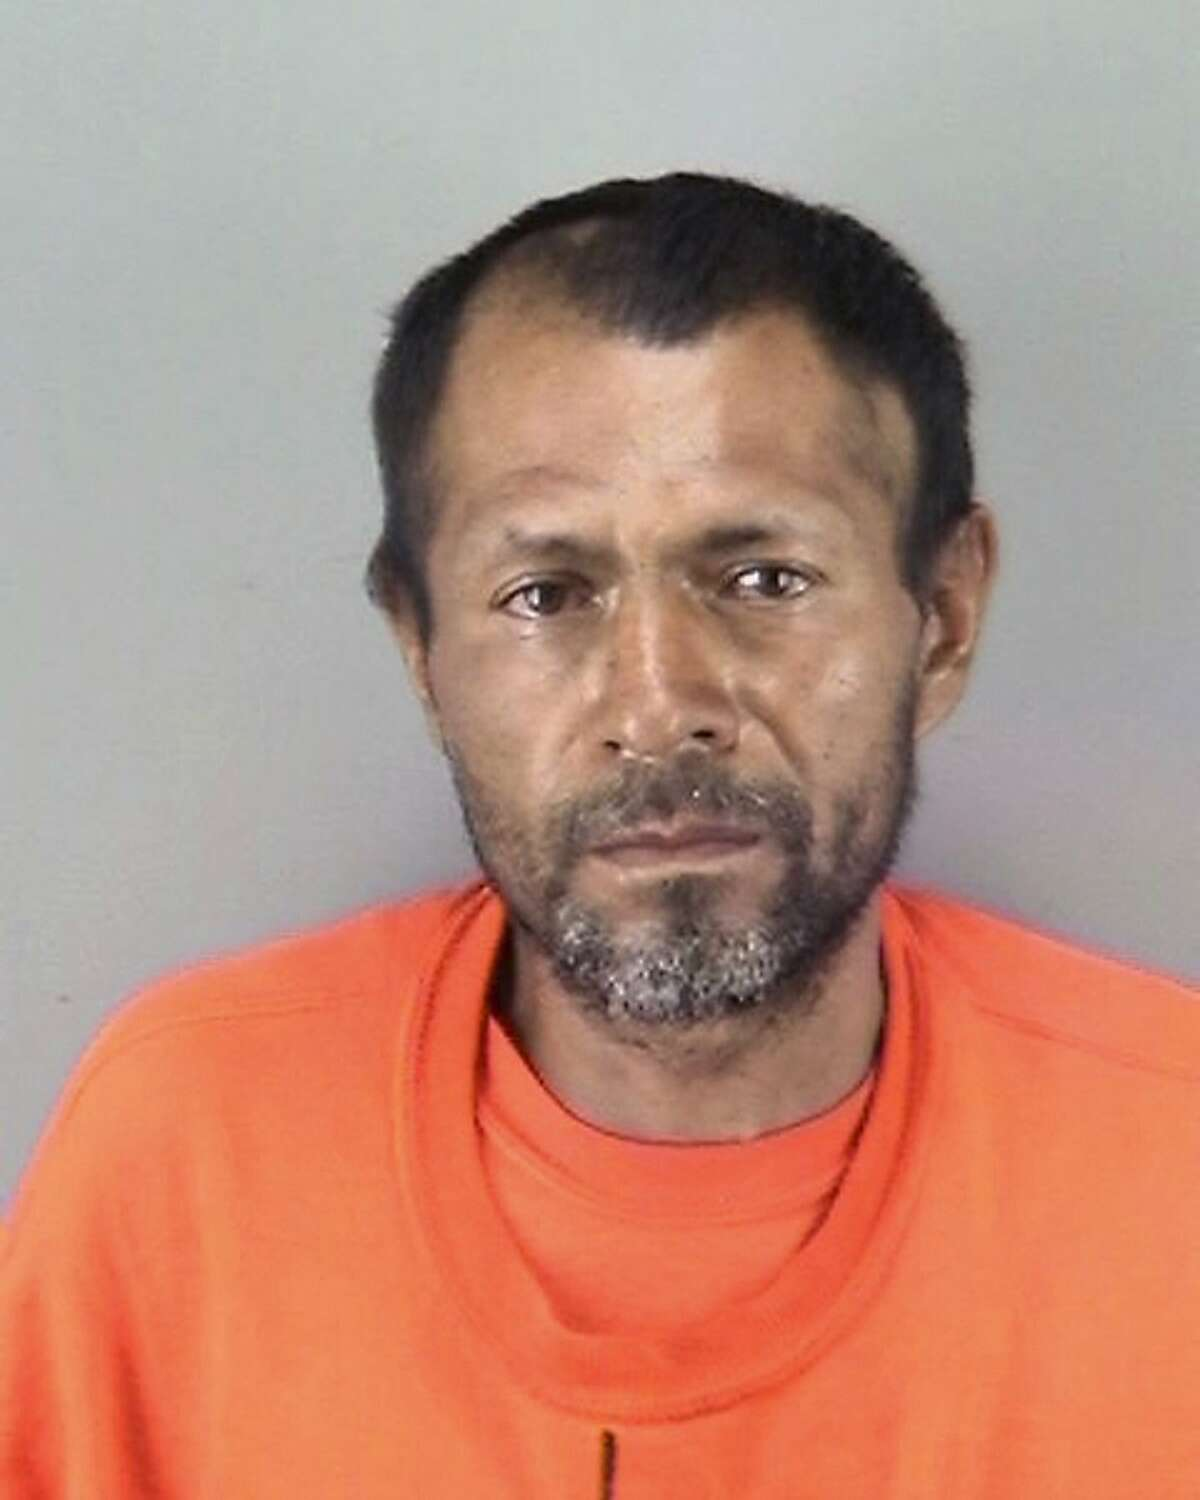 In an undated handout photo, Jose Ines Garcia Zarate, an undocumented Mexican immigrant, who was acquitted of murder and manslaughter charges in the killing of Kathryn Steinle on Nov. 30, 2017. Steinle's July 2015 death on a San Francisco pier became a touchstone in the national debate over immigration. Zarate was convicted of being a felon in possession of a firearm.